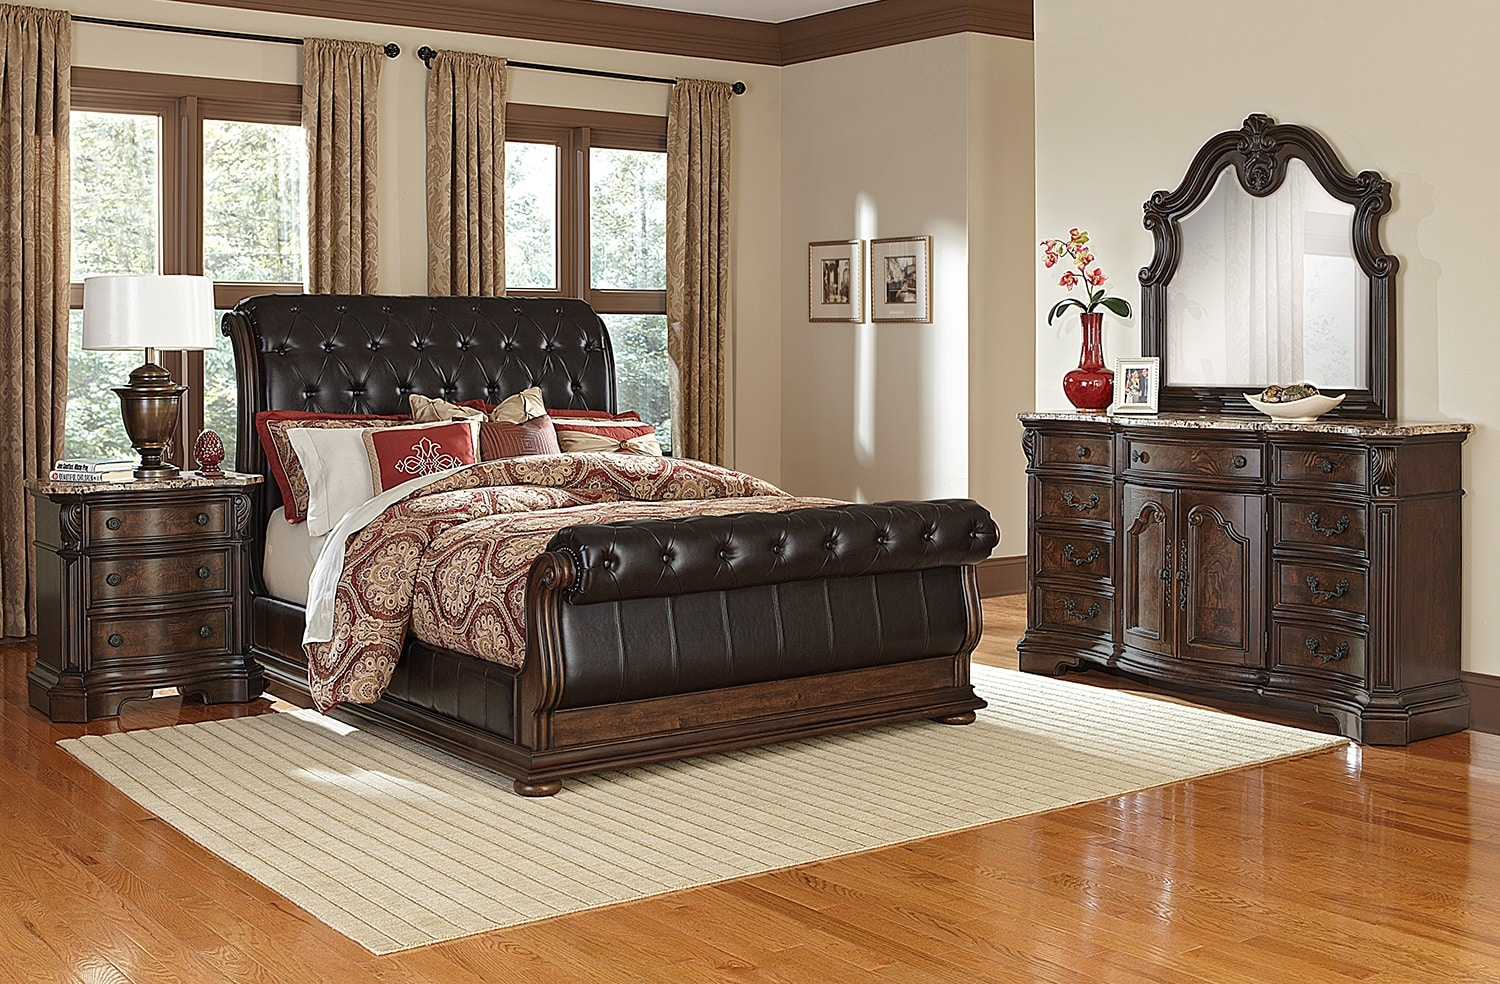 Bedroom Furniture - Monticello 6-Piece Upholstered Sleigh Bedroom Setwith Nightstand, Dresser and Mirror